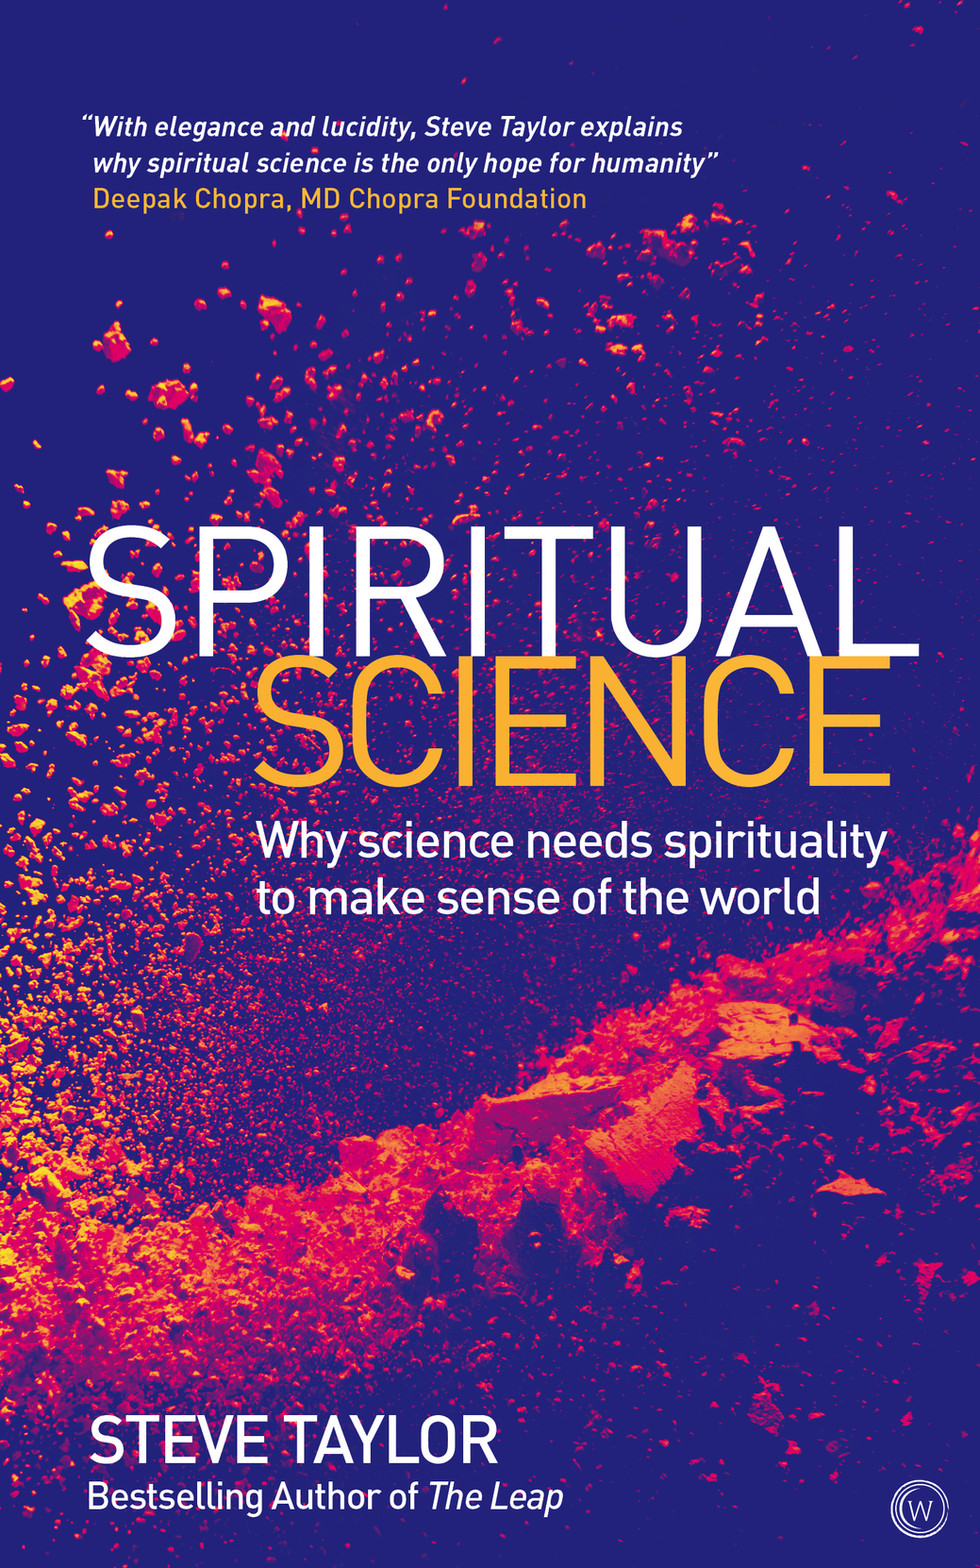 Book Launch: Spiritual Science by Steve Taylor